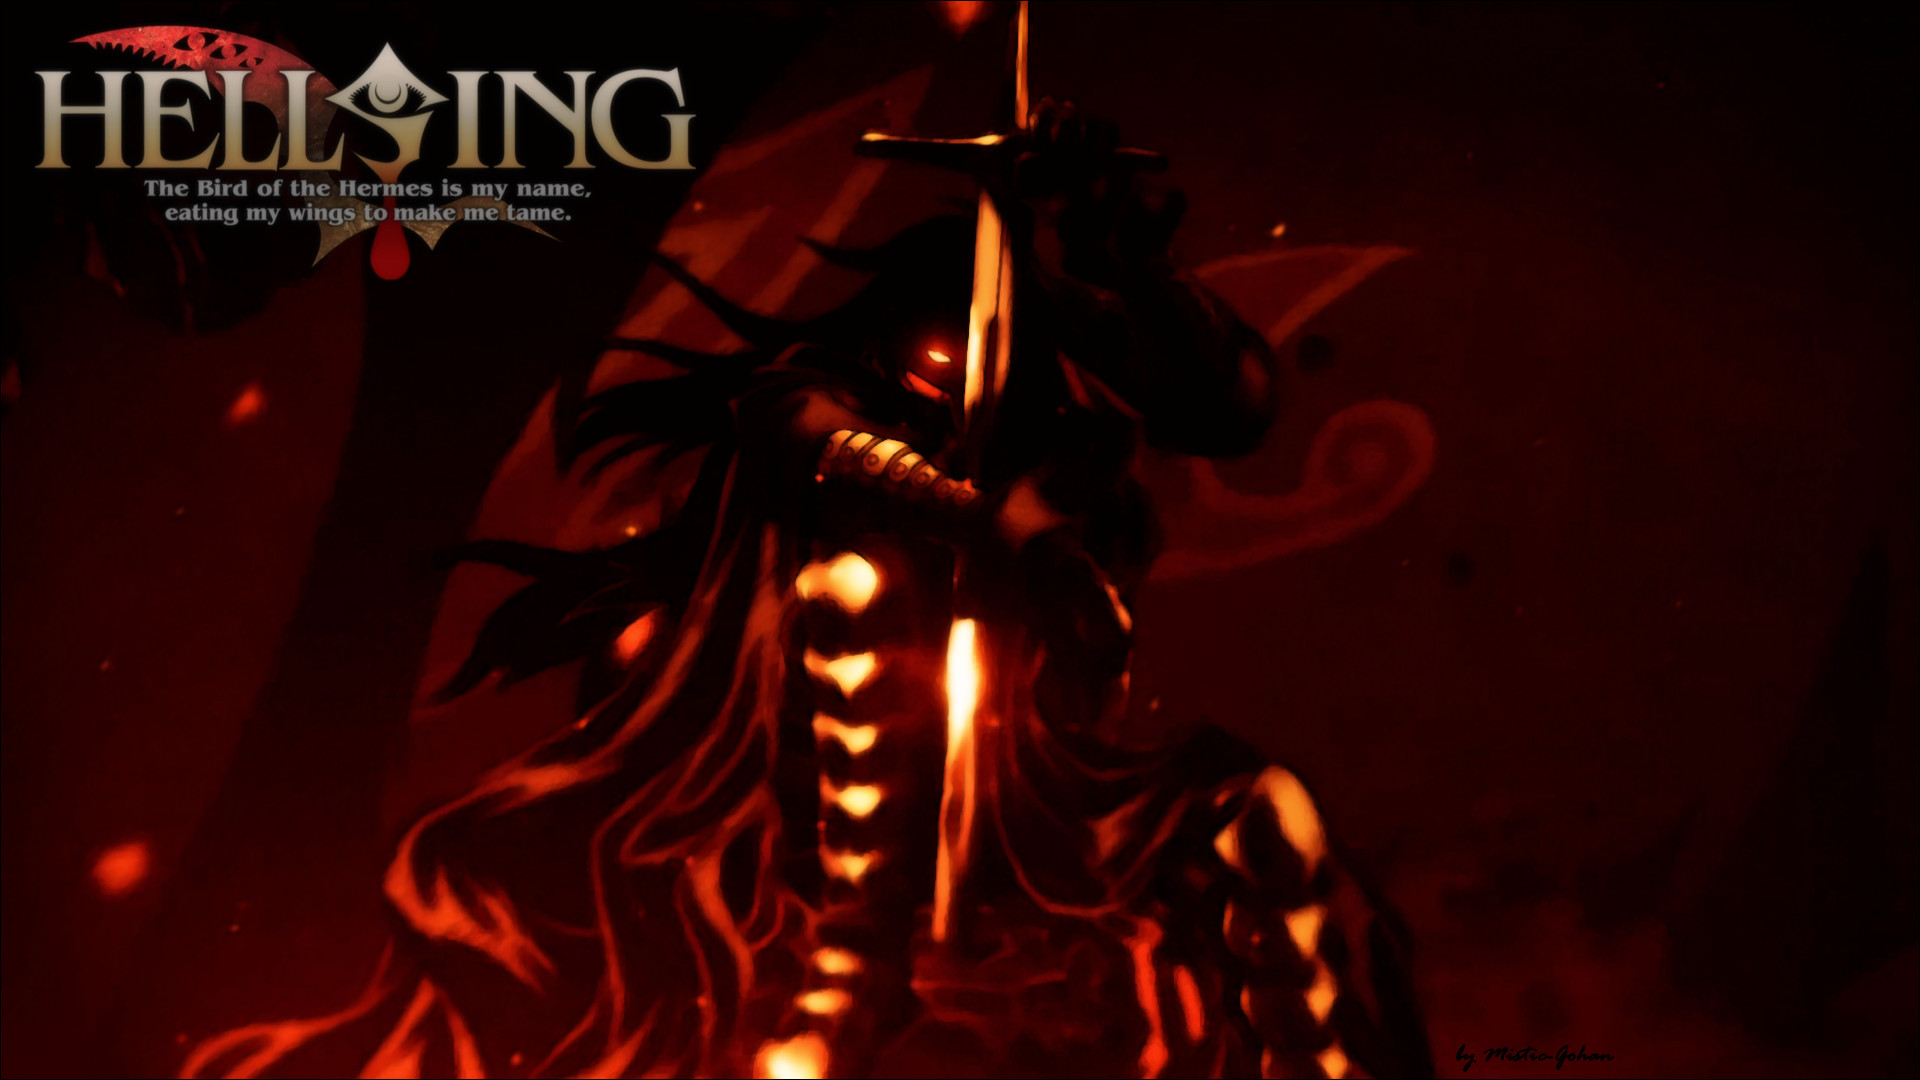 Photo Collection: FJM.692 Hellsing 1024×1024 Pics, NM.CP Wallpapers